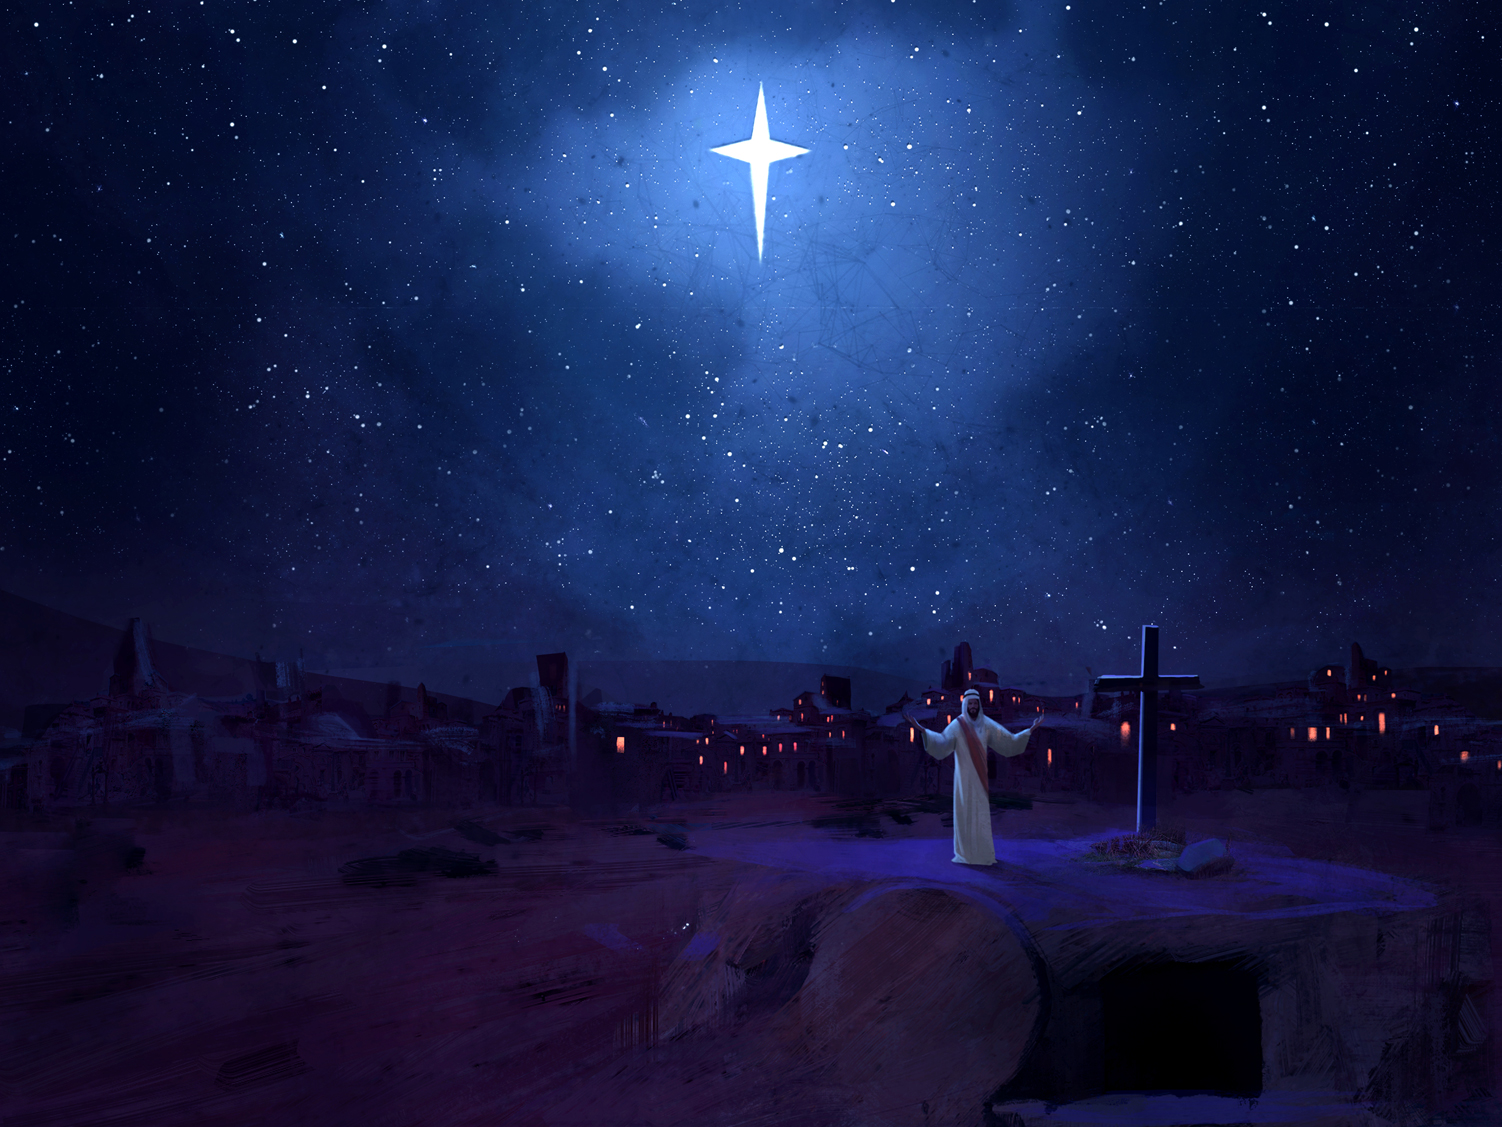 christmas worship background - photo #21